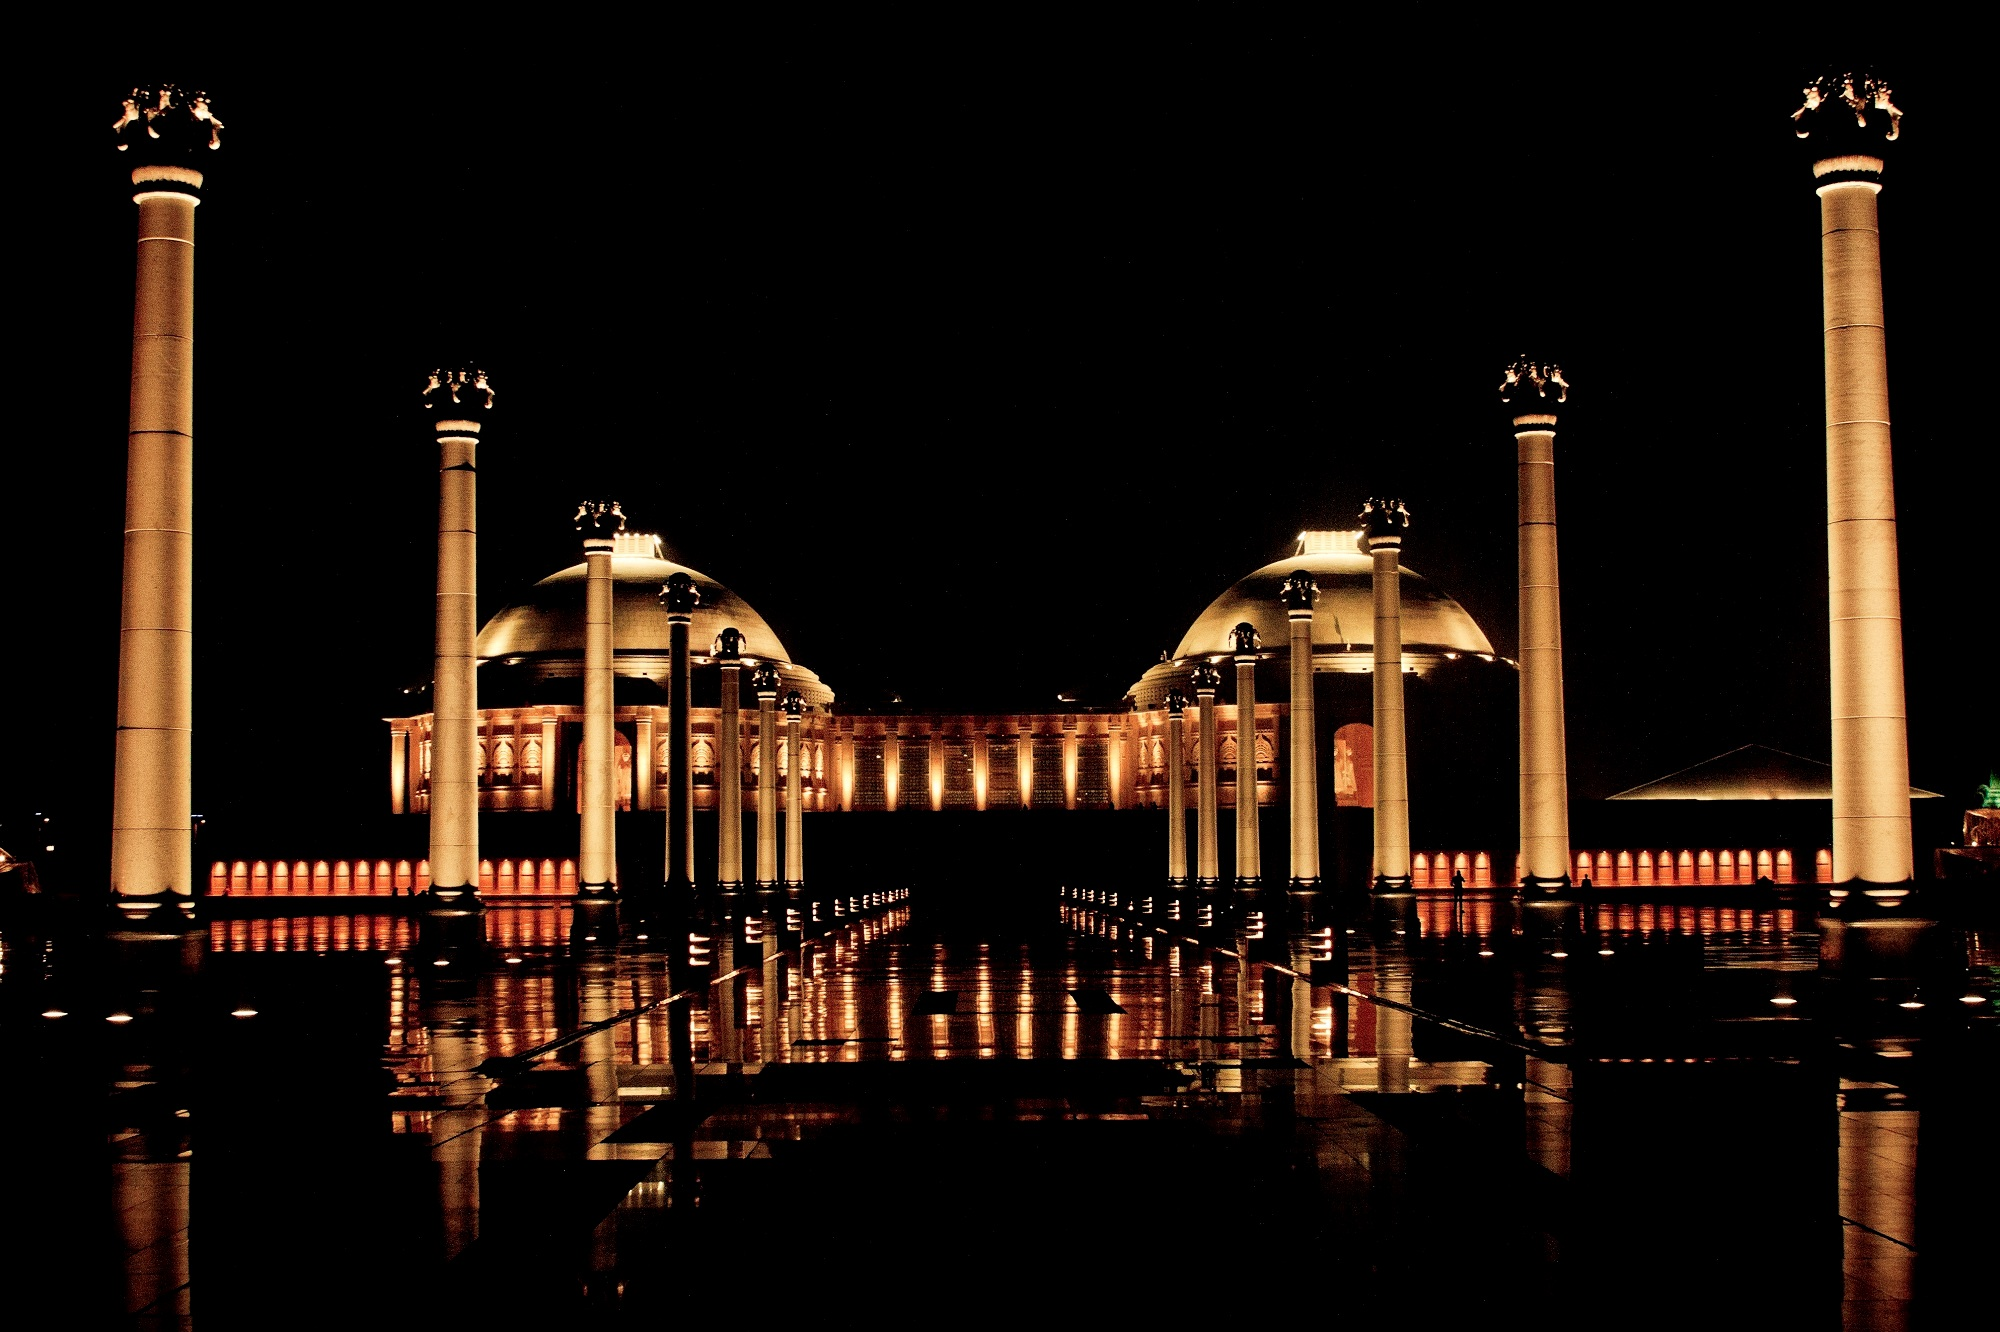 Ambedkar Memorial, Lucknow